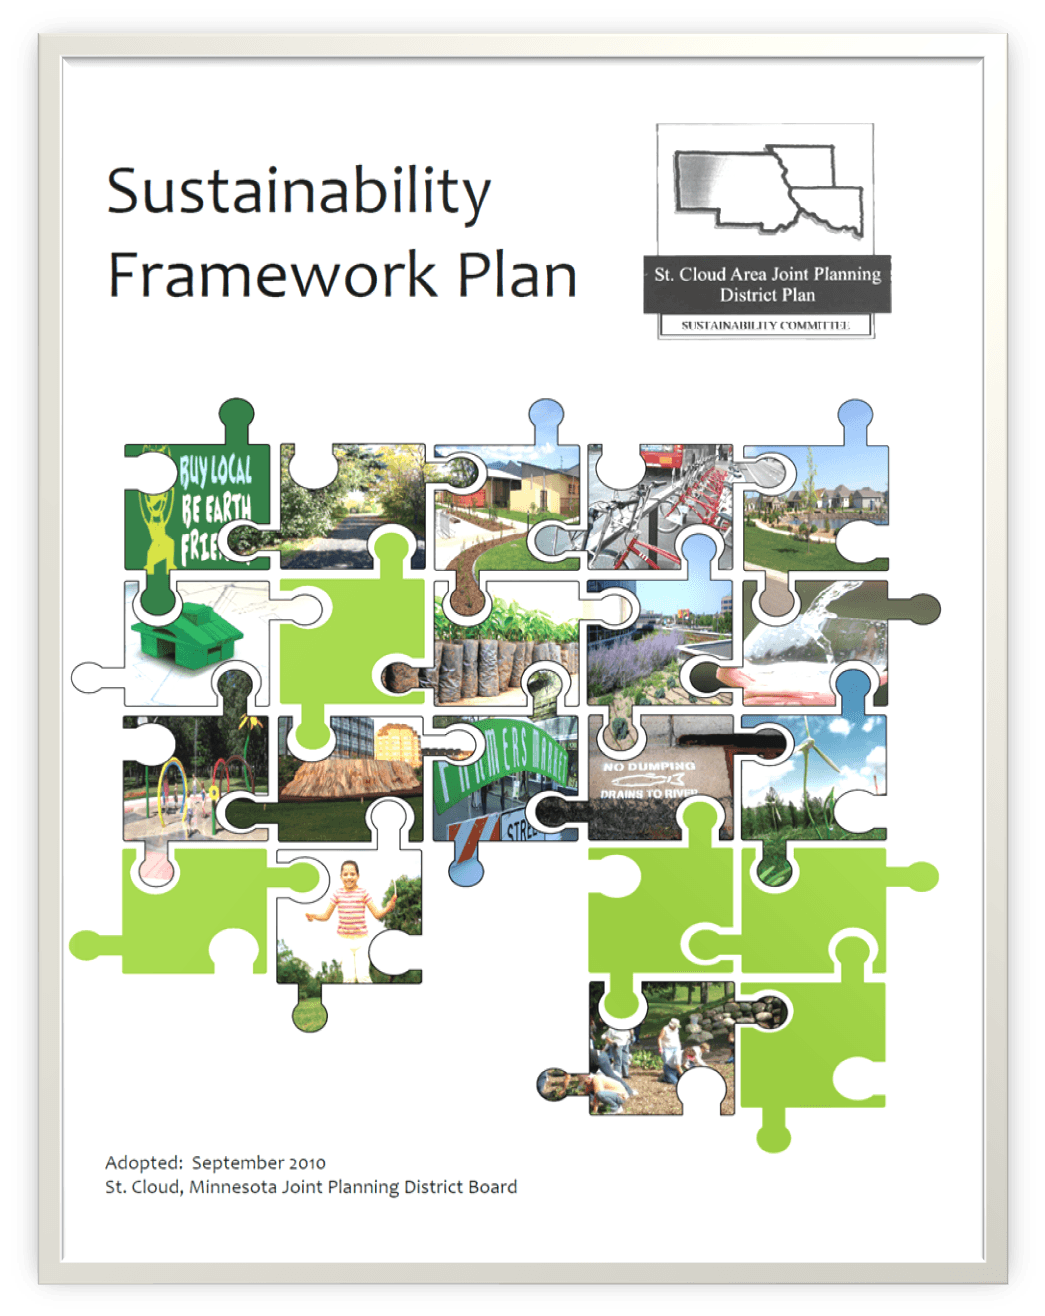 Sustainability Framework Plan